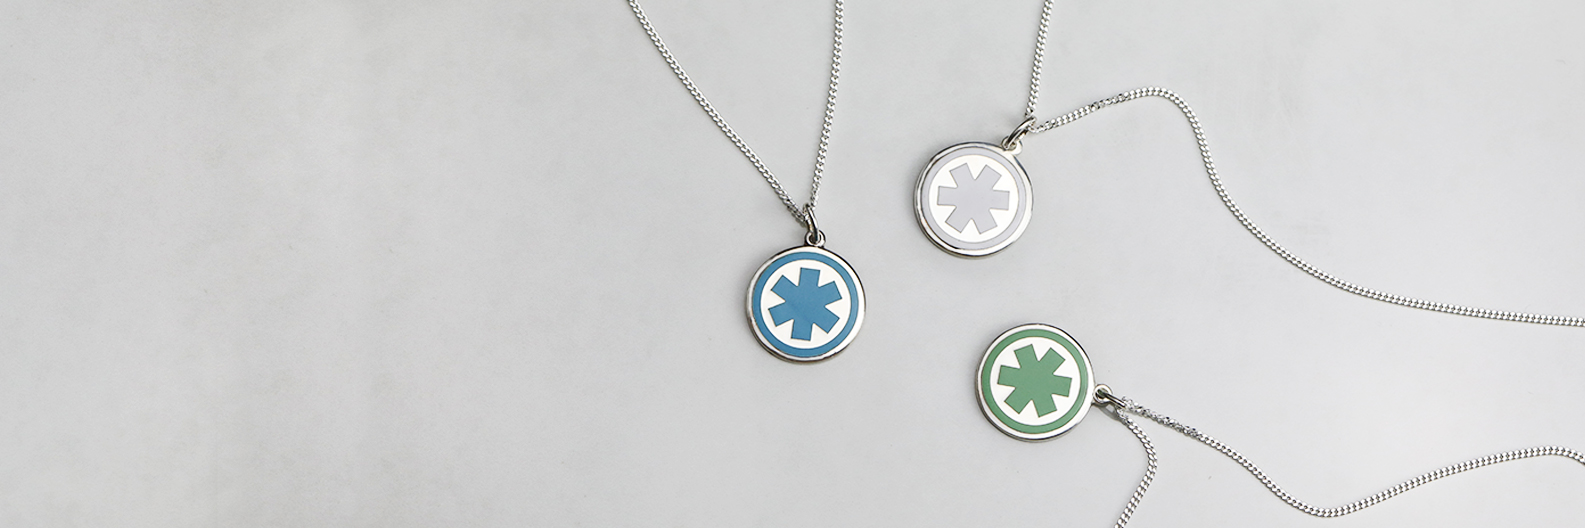 """<span style=""""color: #0c70af""""><strong> Stylish Pendants</span></strong></br><span style=""""color: #000000;"""">for Everyday Wear</span><br/>"""